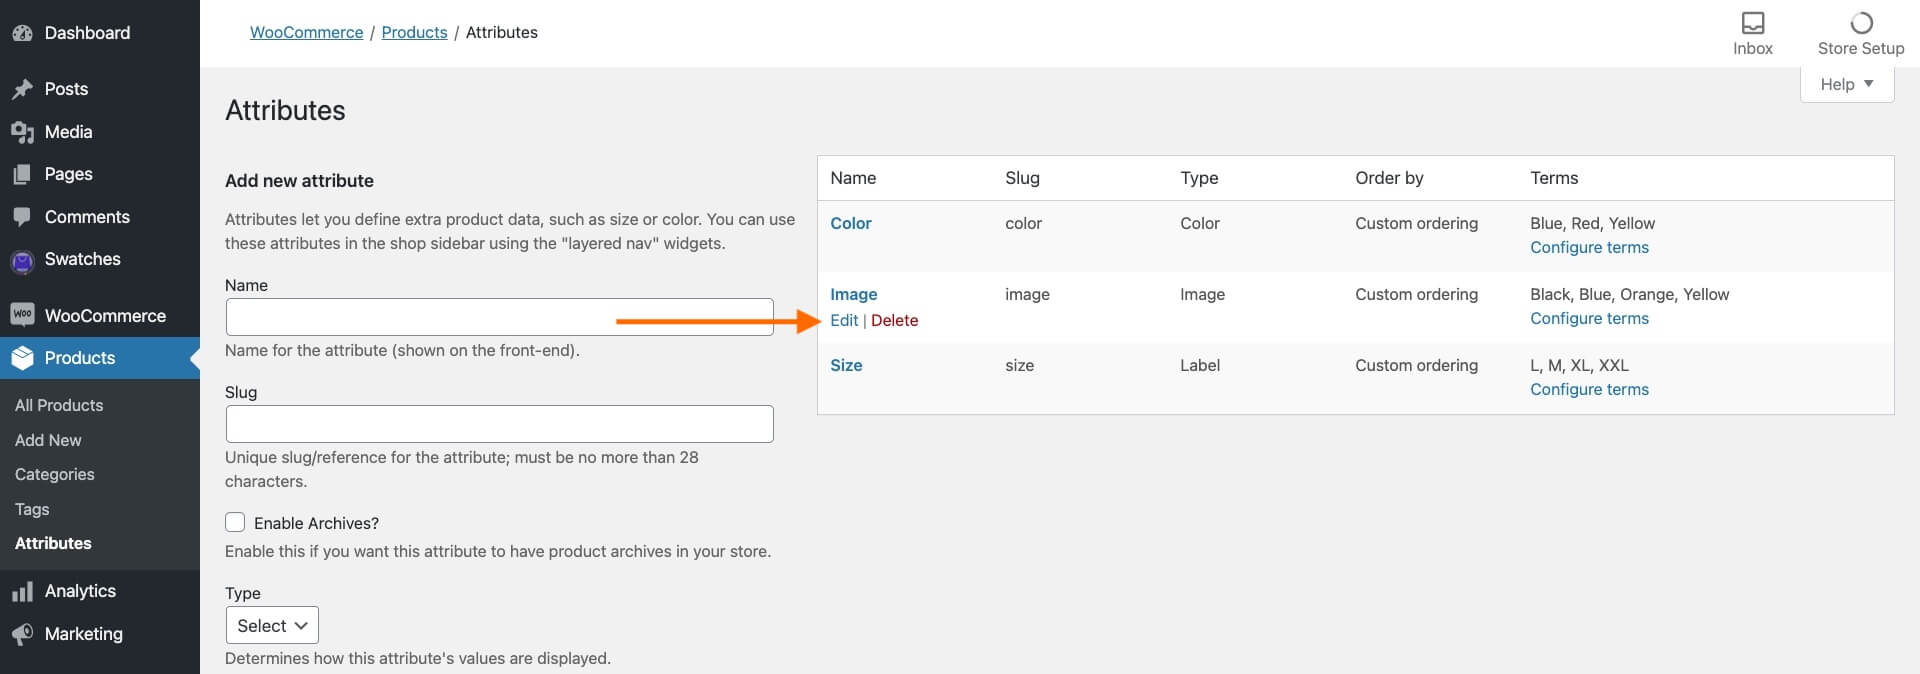 How To Set Up WooCommerce Image Swatches For Image Variation 3